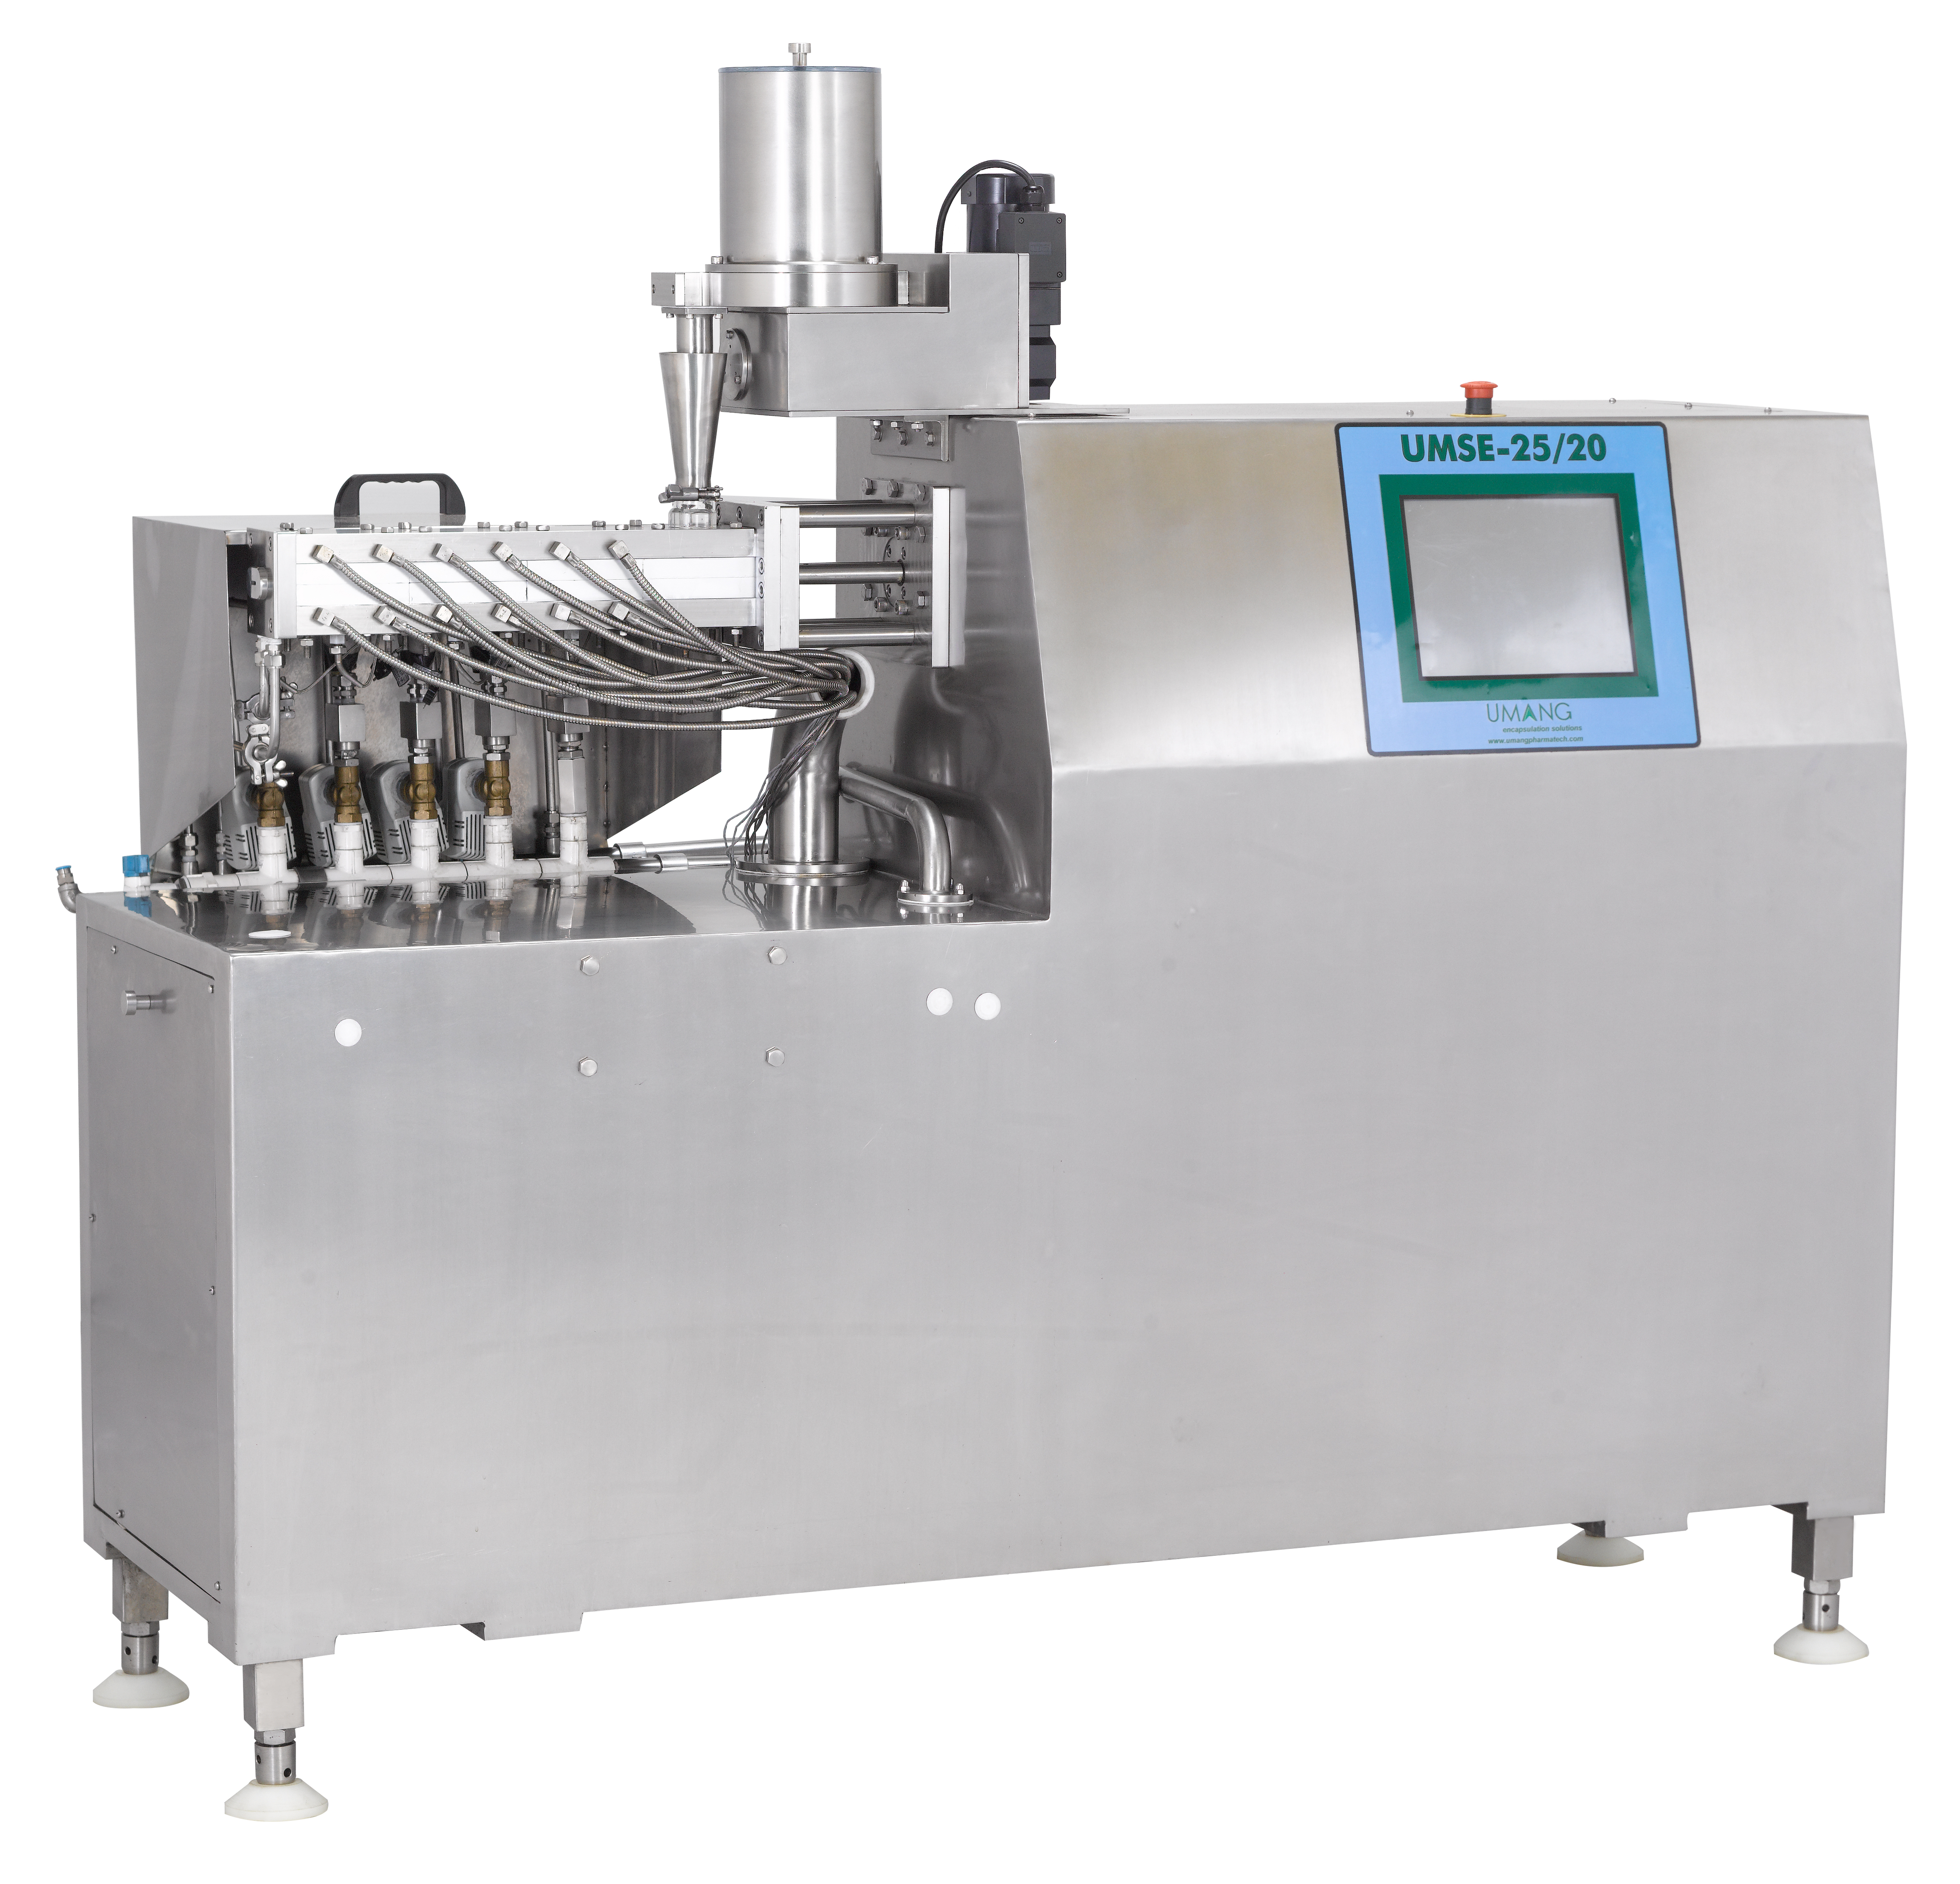 Hot Melt Extruder is the upgraded version of Extrusion